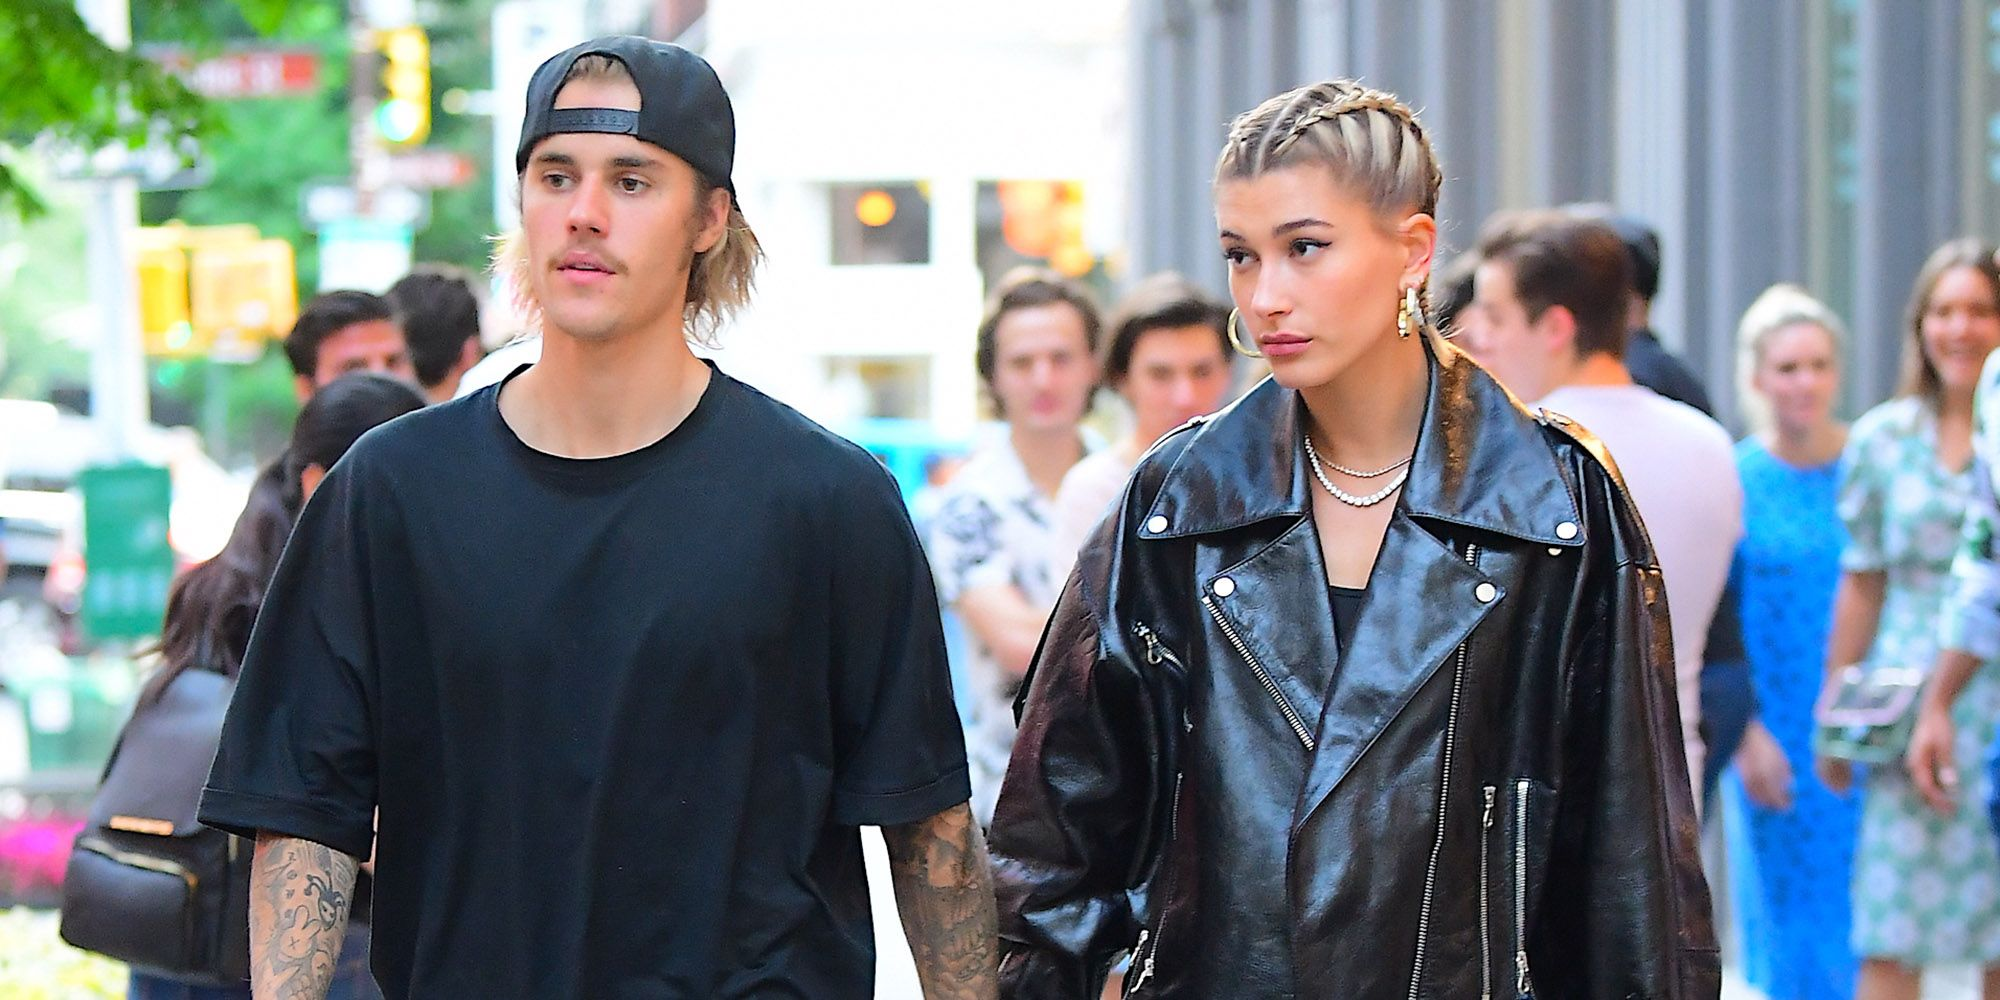 Justin Bieber and Hailey Baldwin Just Went Instagram Official